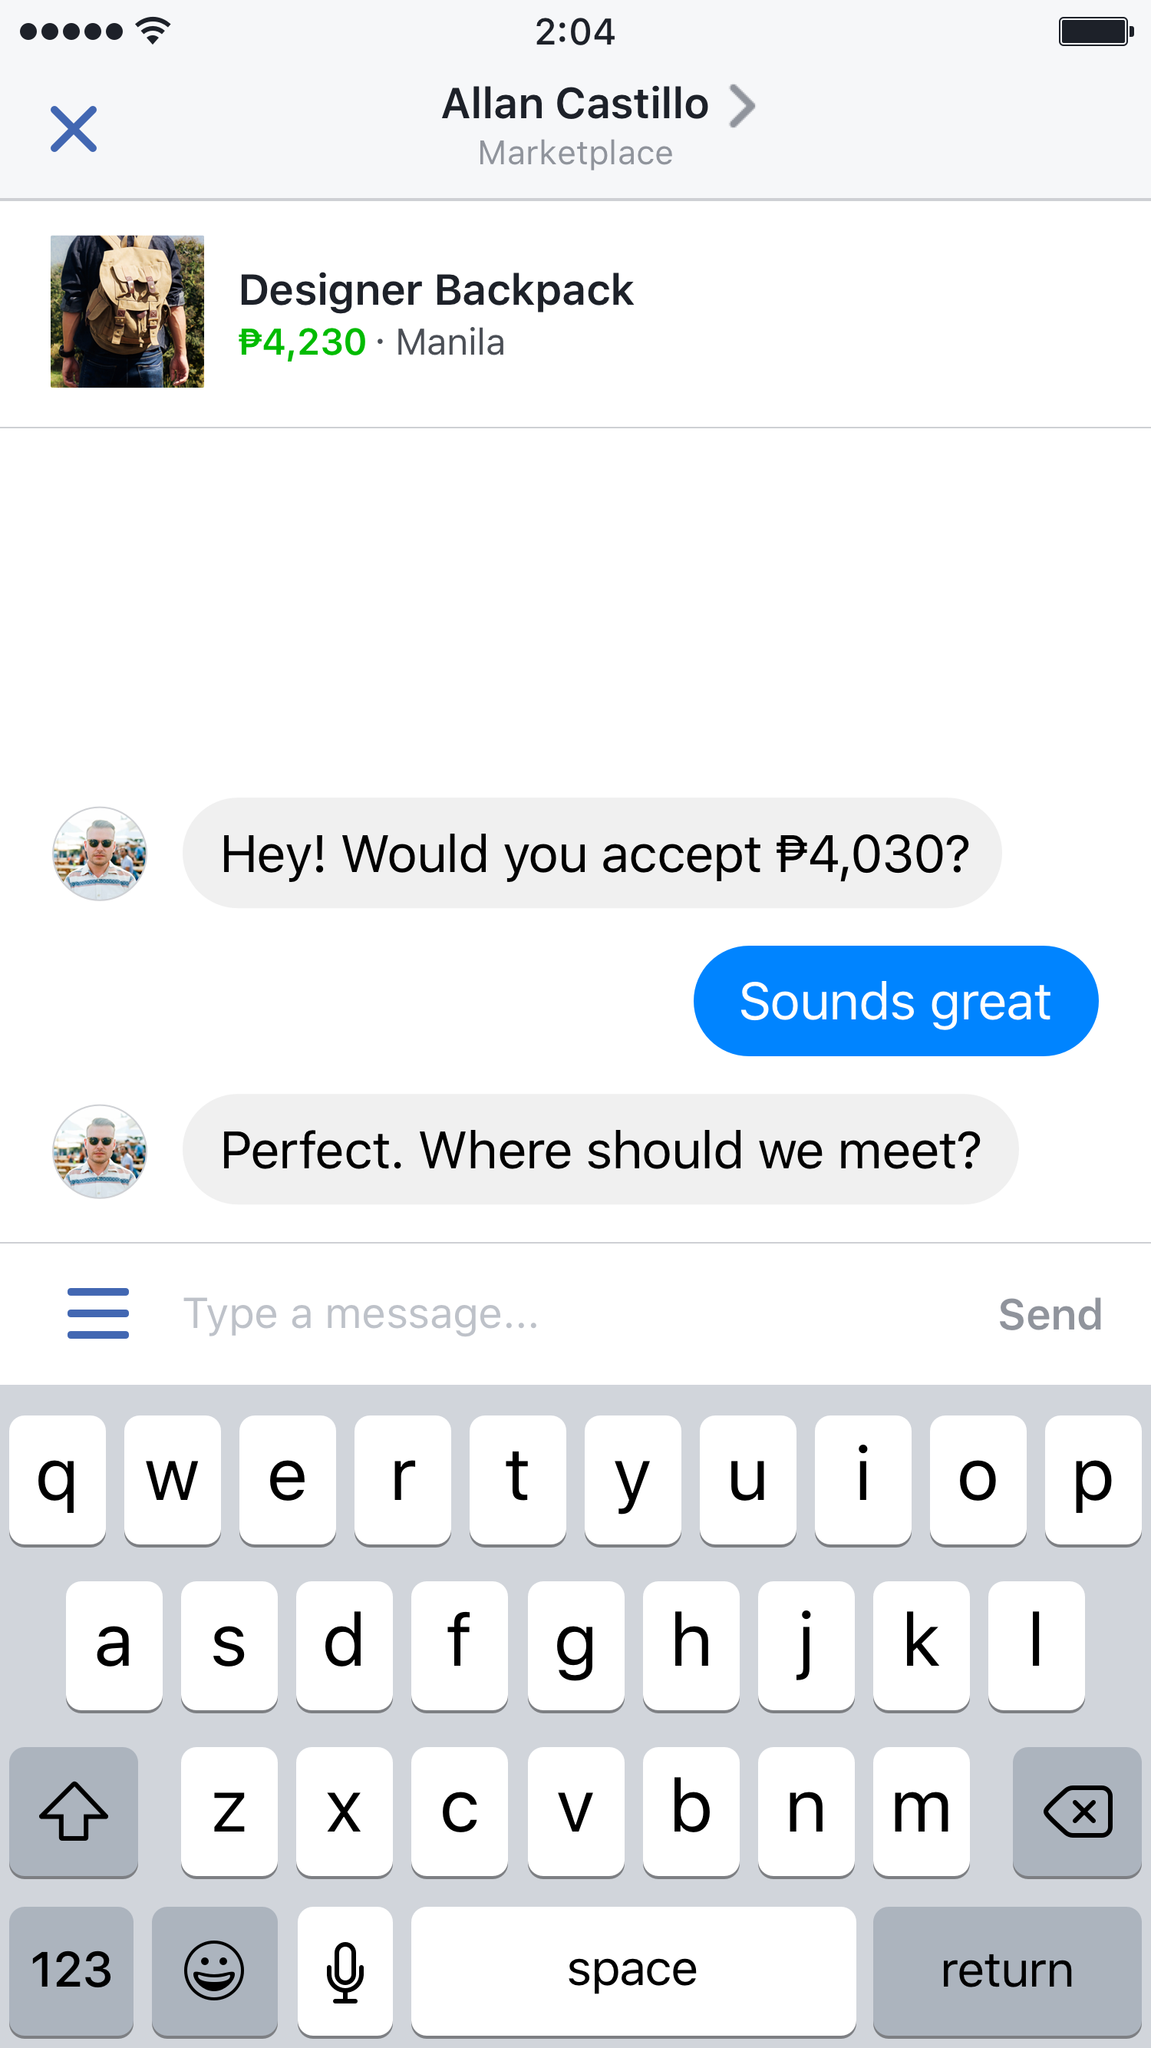 Make deals easily with the seller through Marketplace. (Image from Facebook)